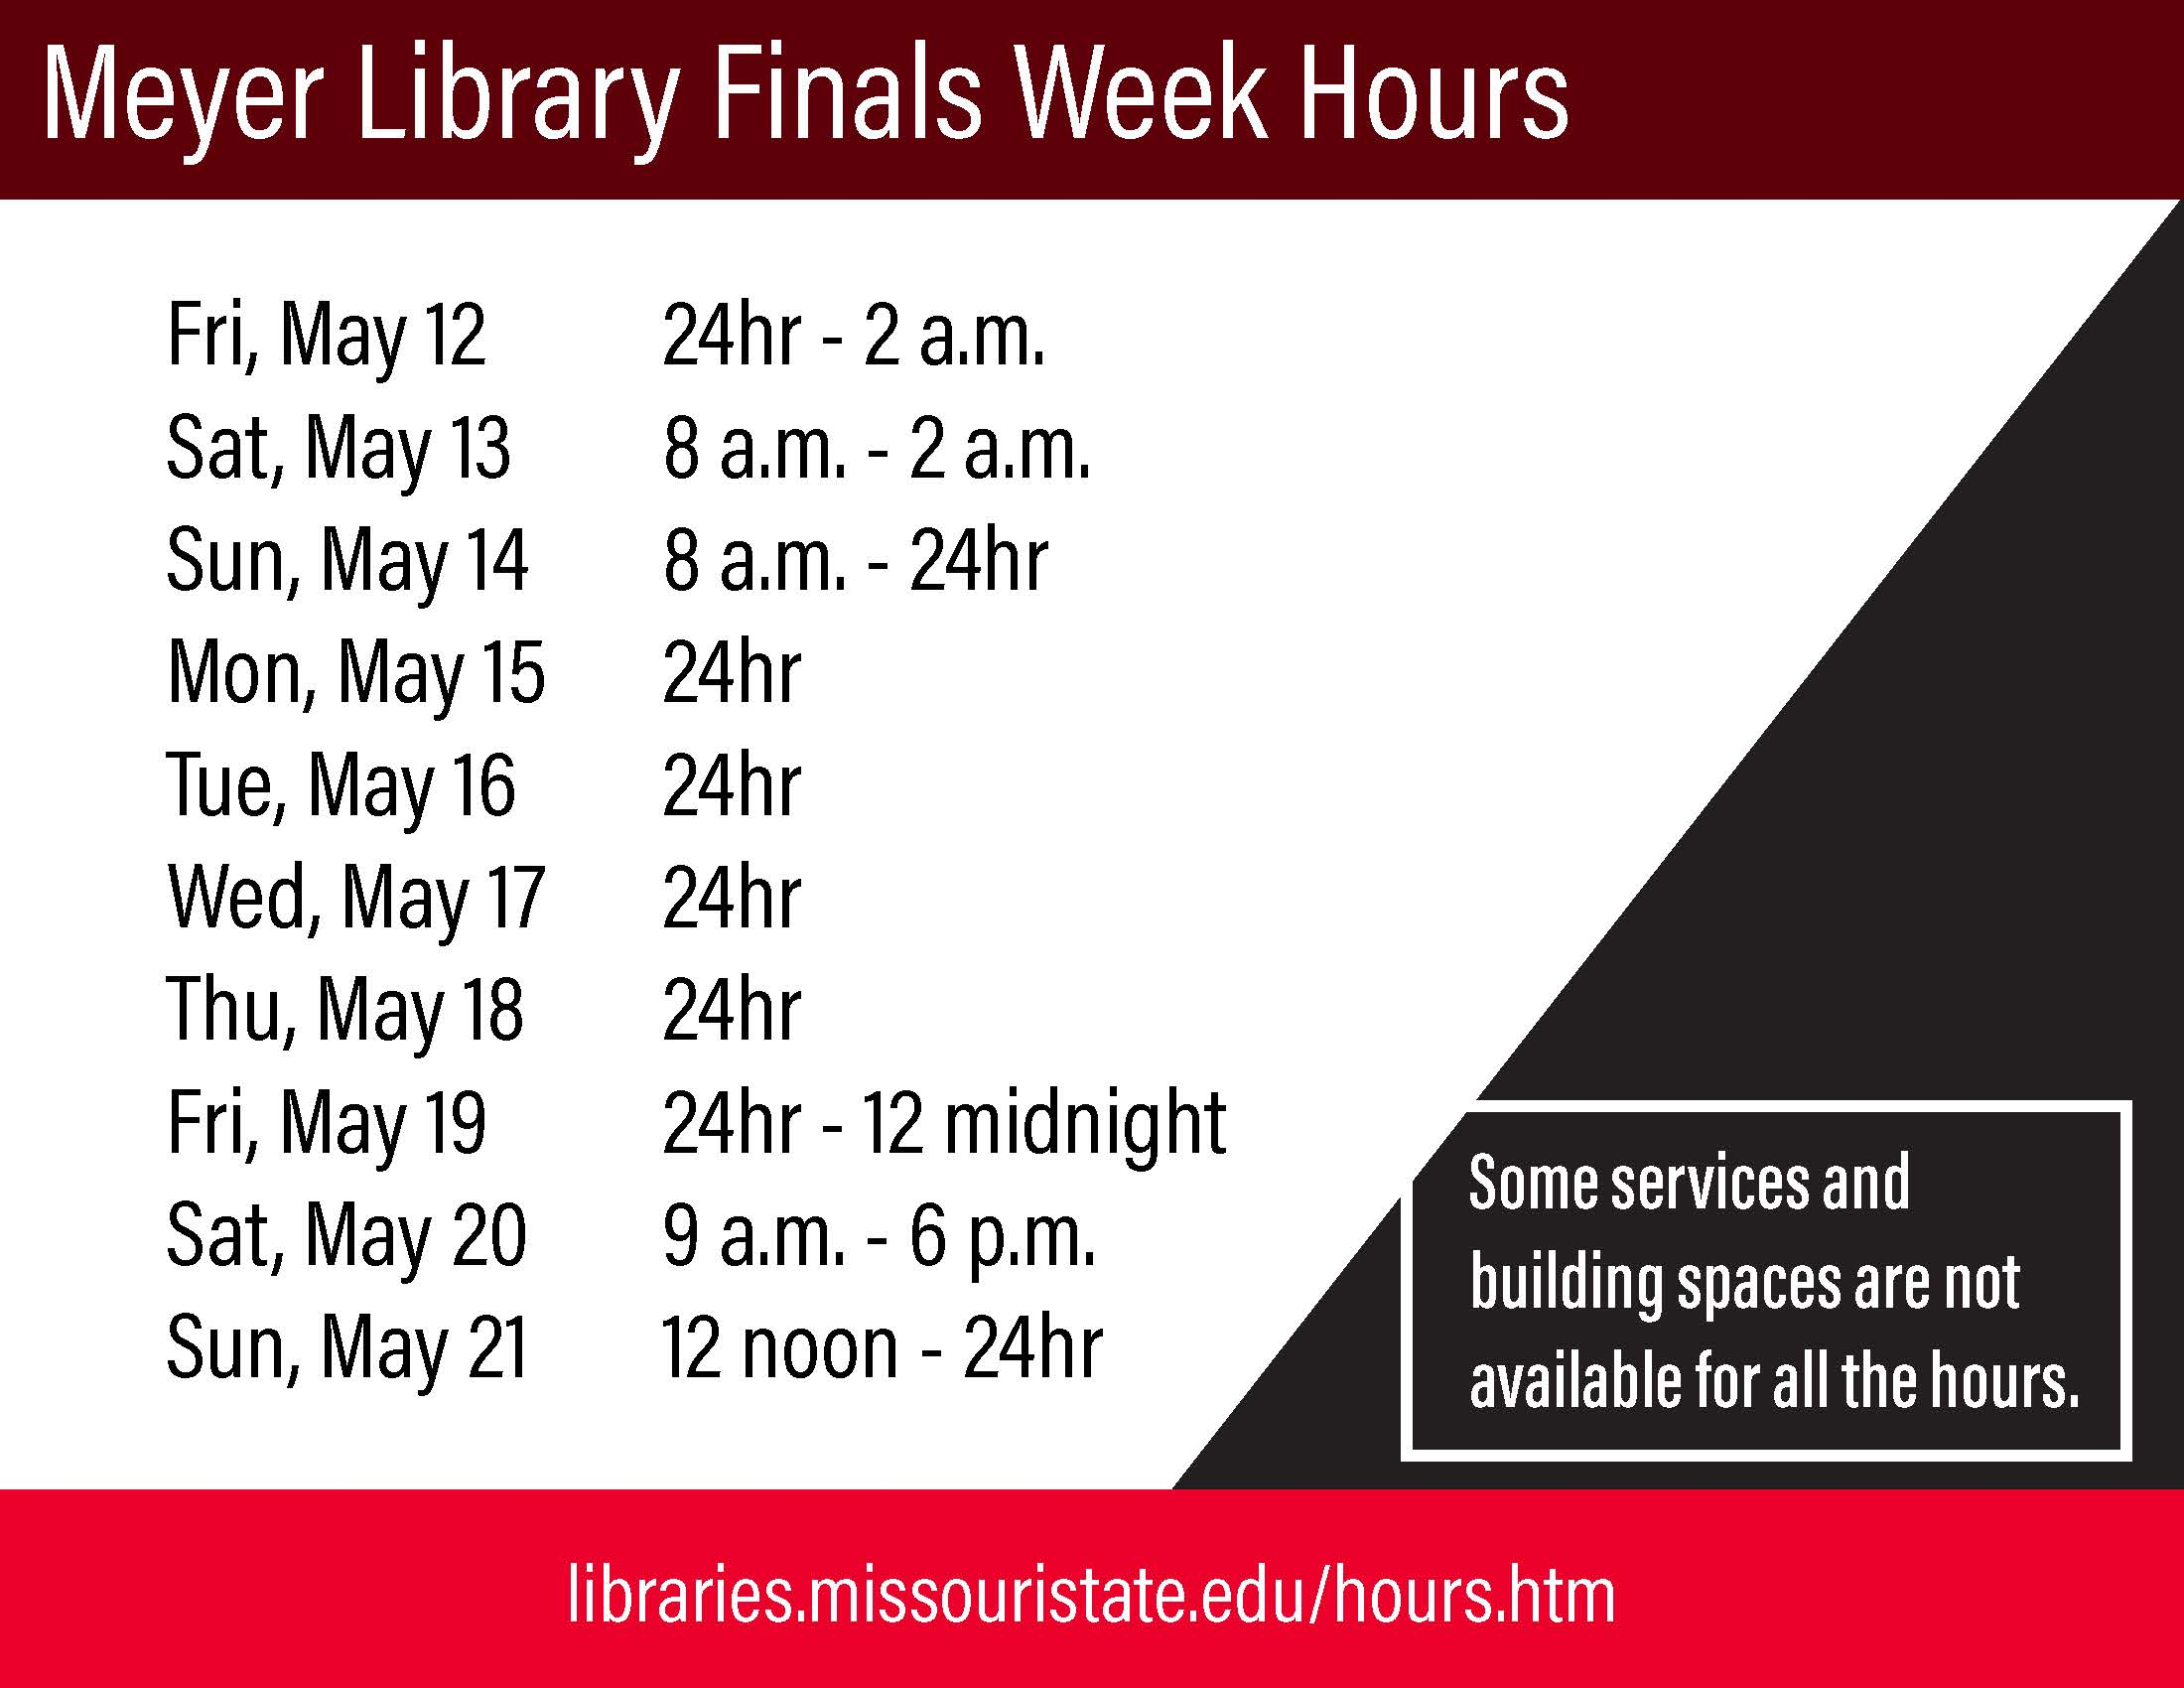 Meyer Library Finals Hours